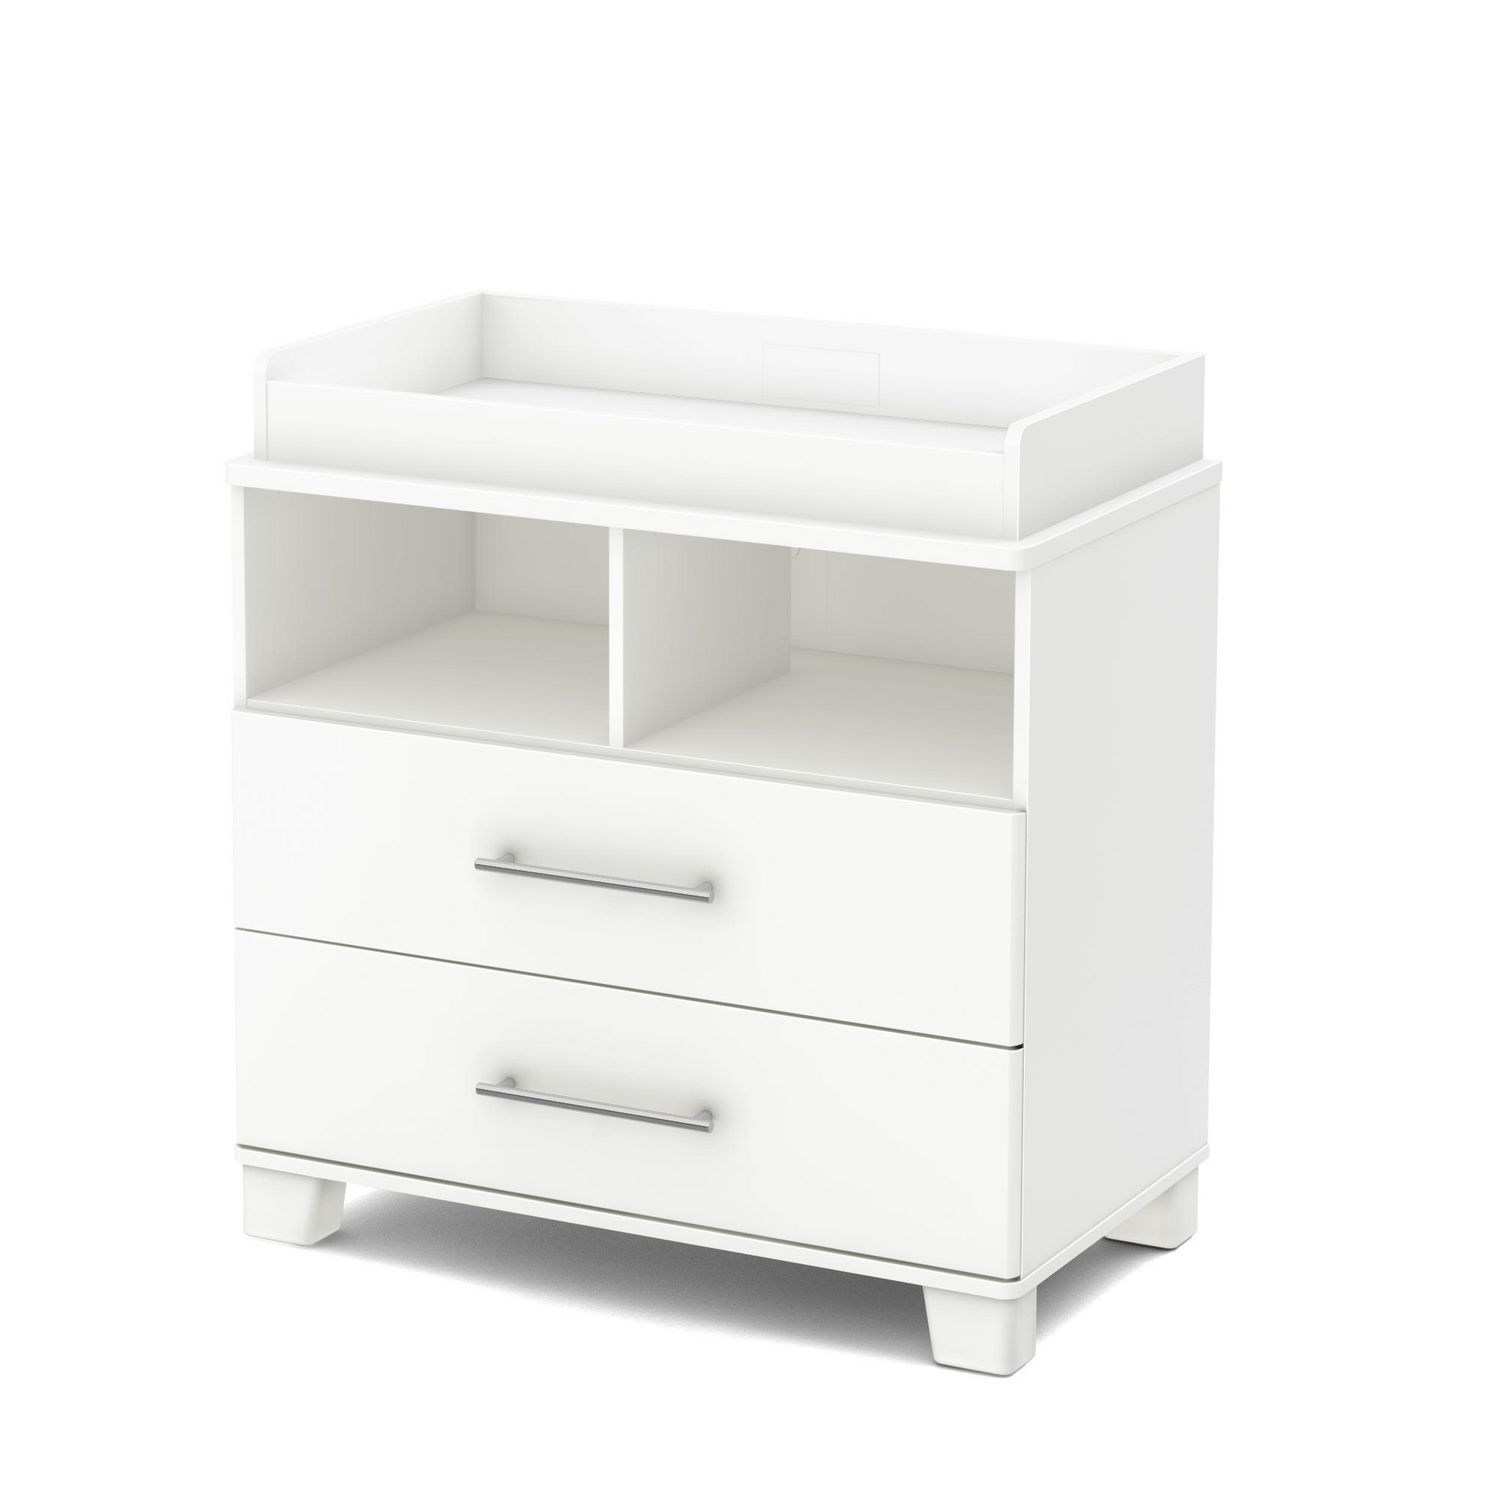 products view drawer grey children dresser emerson changing with angle delta angled w table top